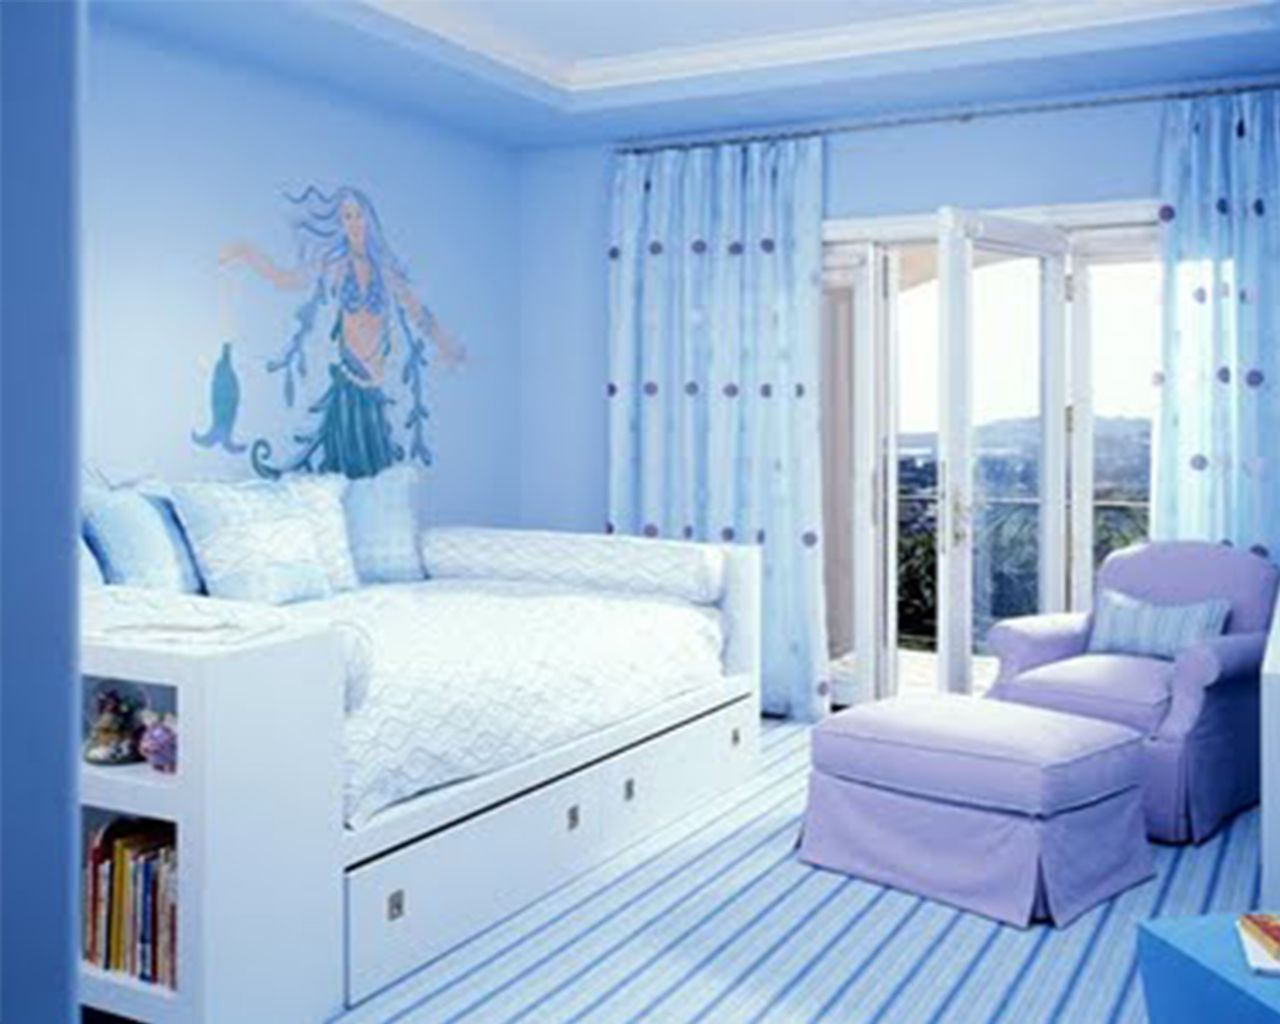 Bedroom Bedroom Ideas For Teenage Girls Kids Twin Beds